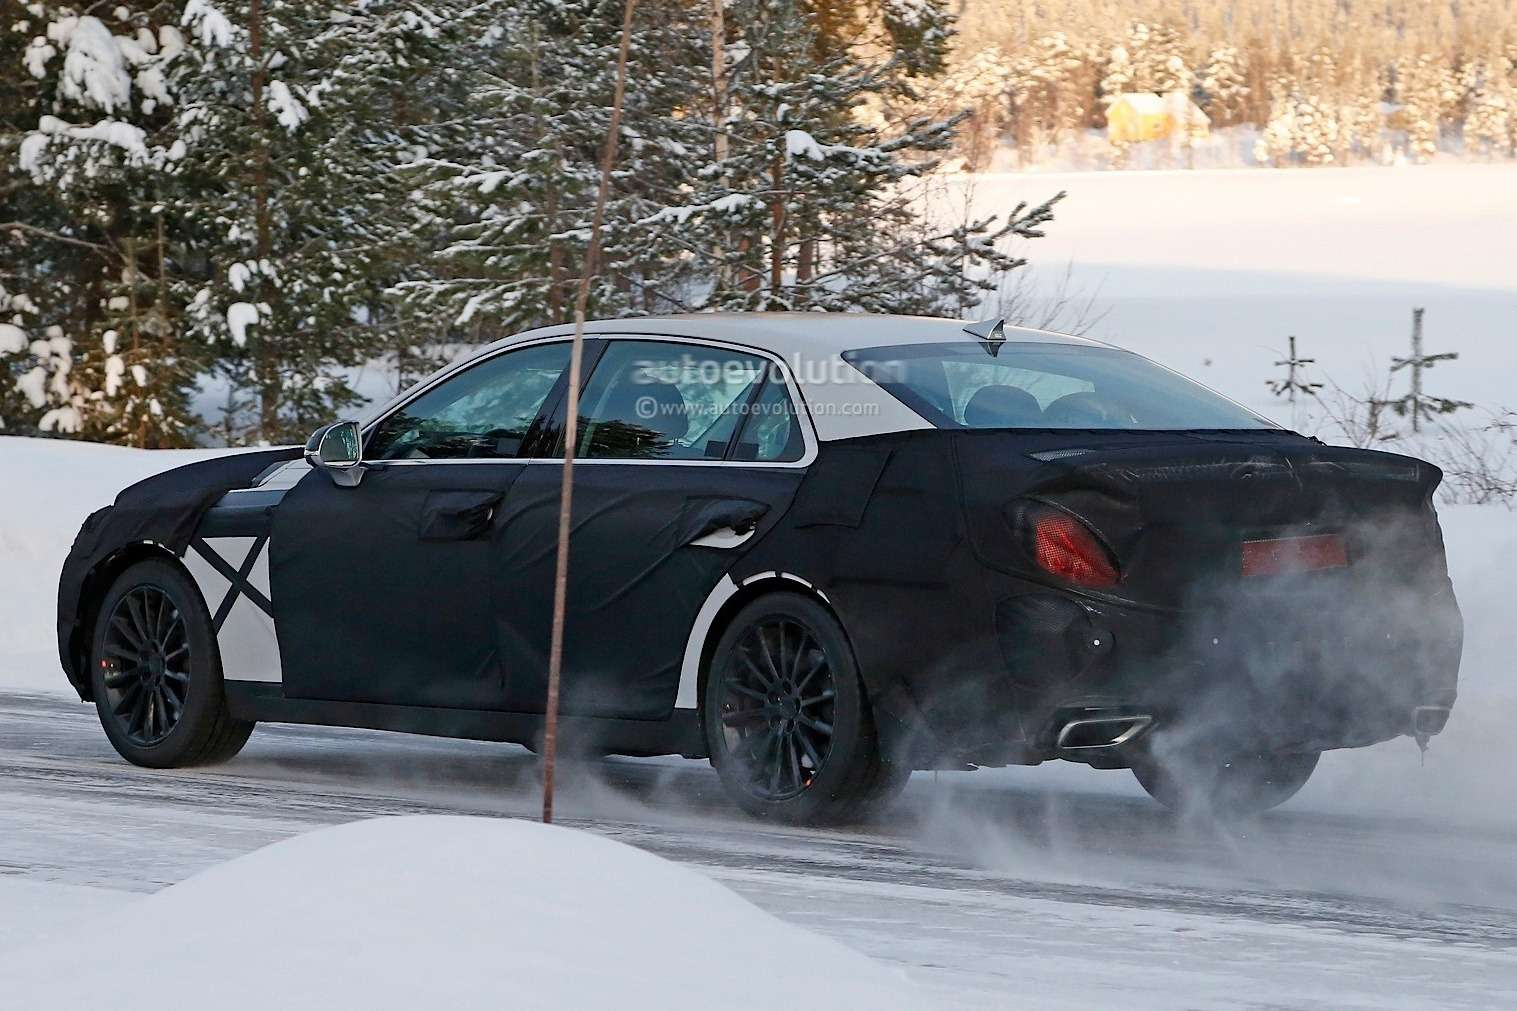 spyshots-2016-hyundai-equus-spied-with-s-class-inspired-taillights_8